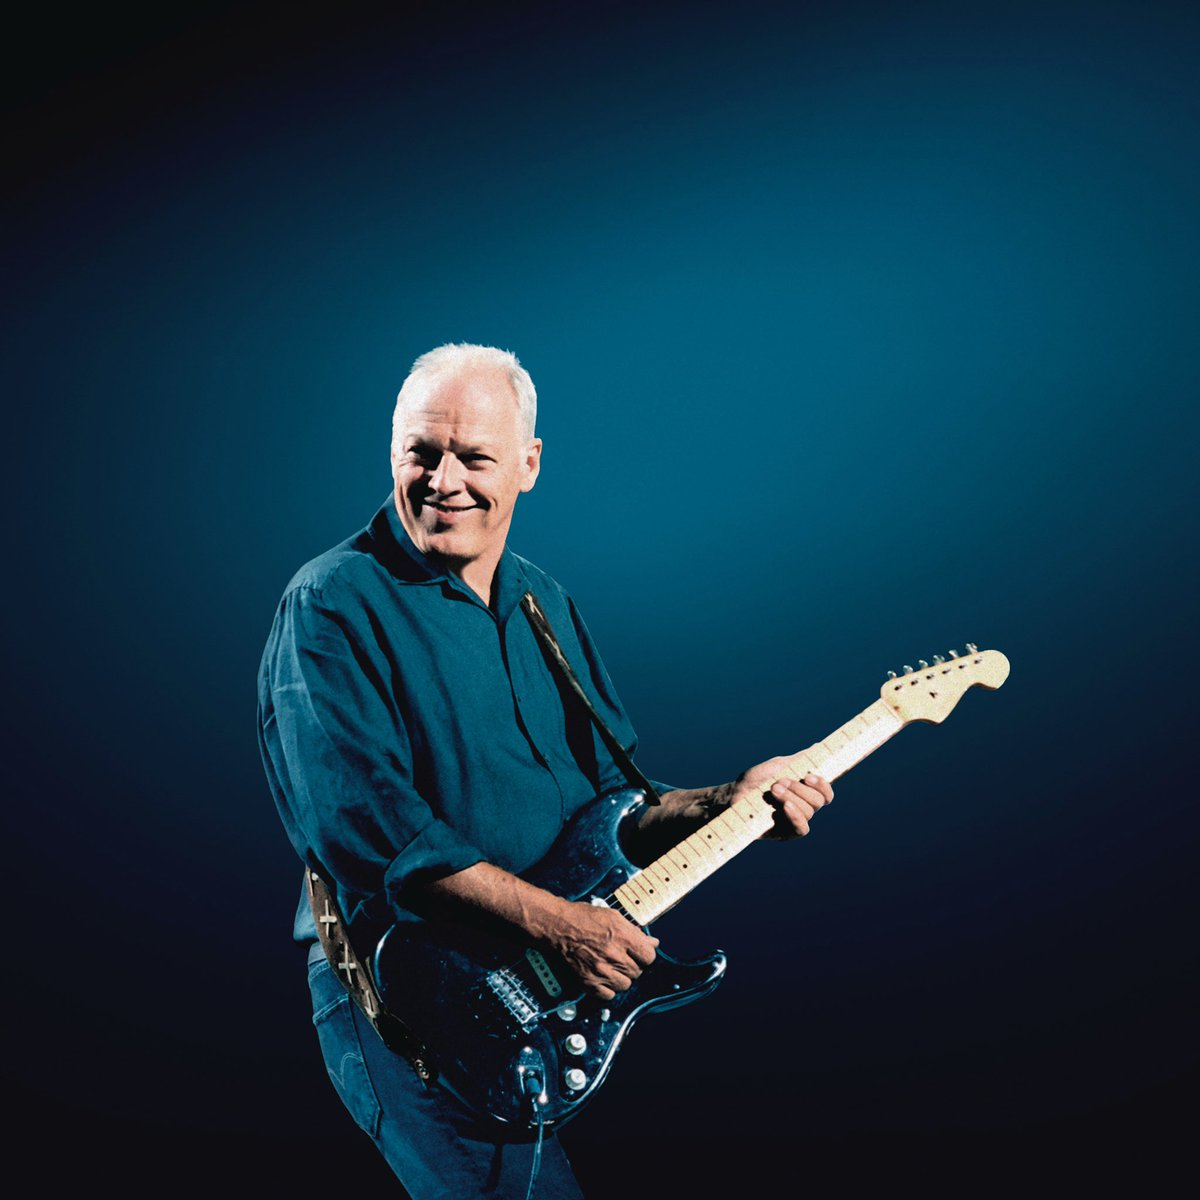 David Gilmour in front of a blue background, smiling and playing his signature black Fender Stratocaster